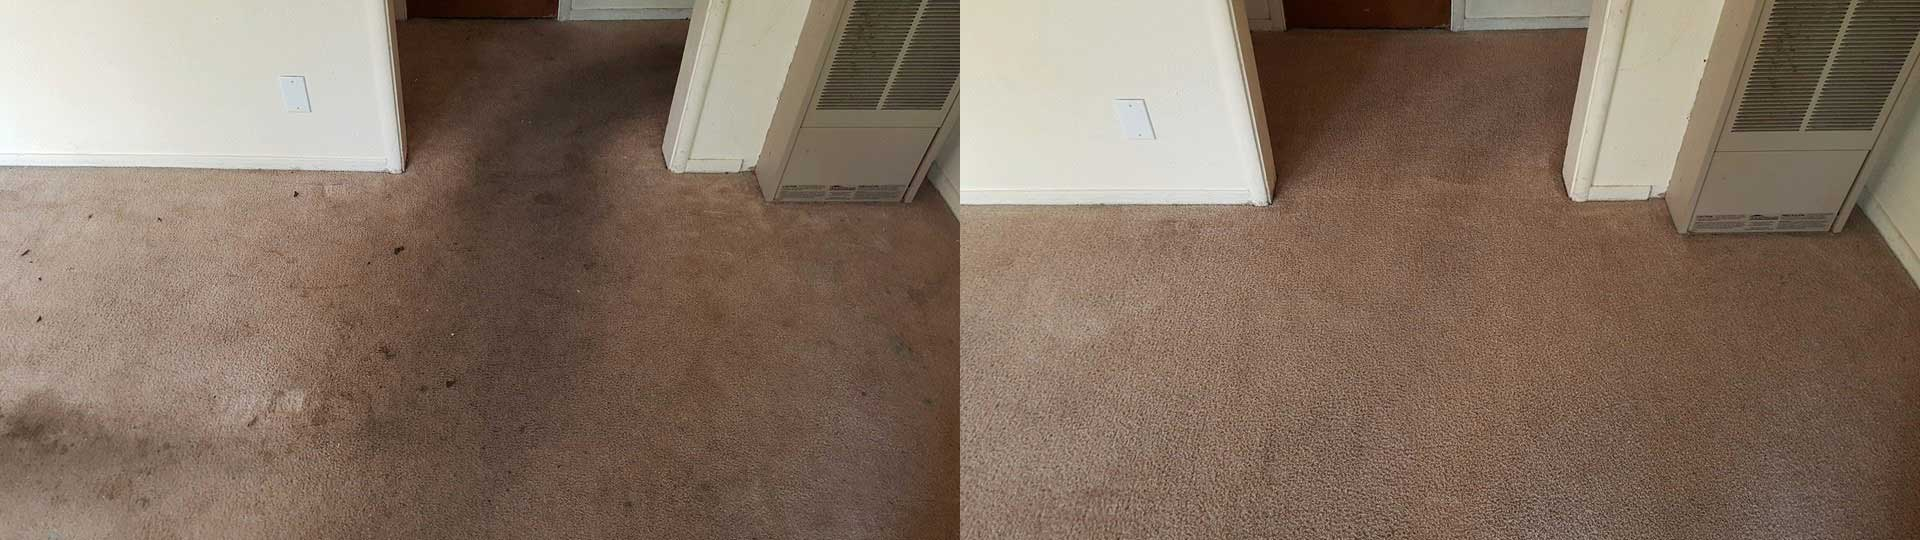 carpet cleaning South Natomas CA